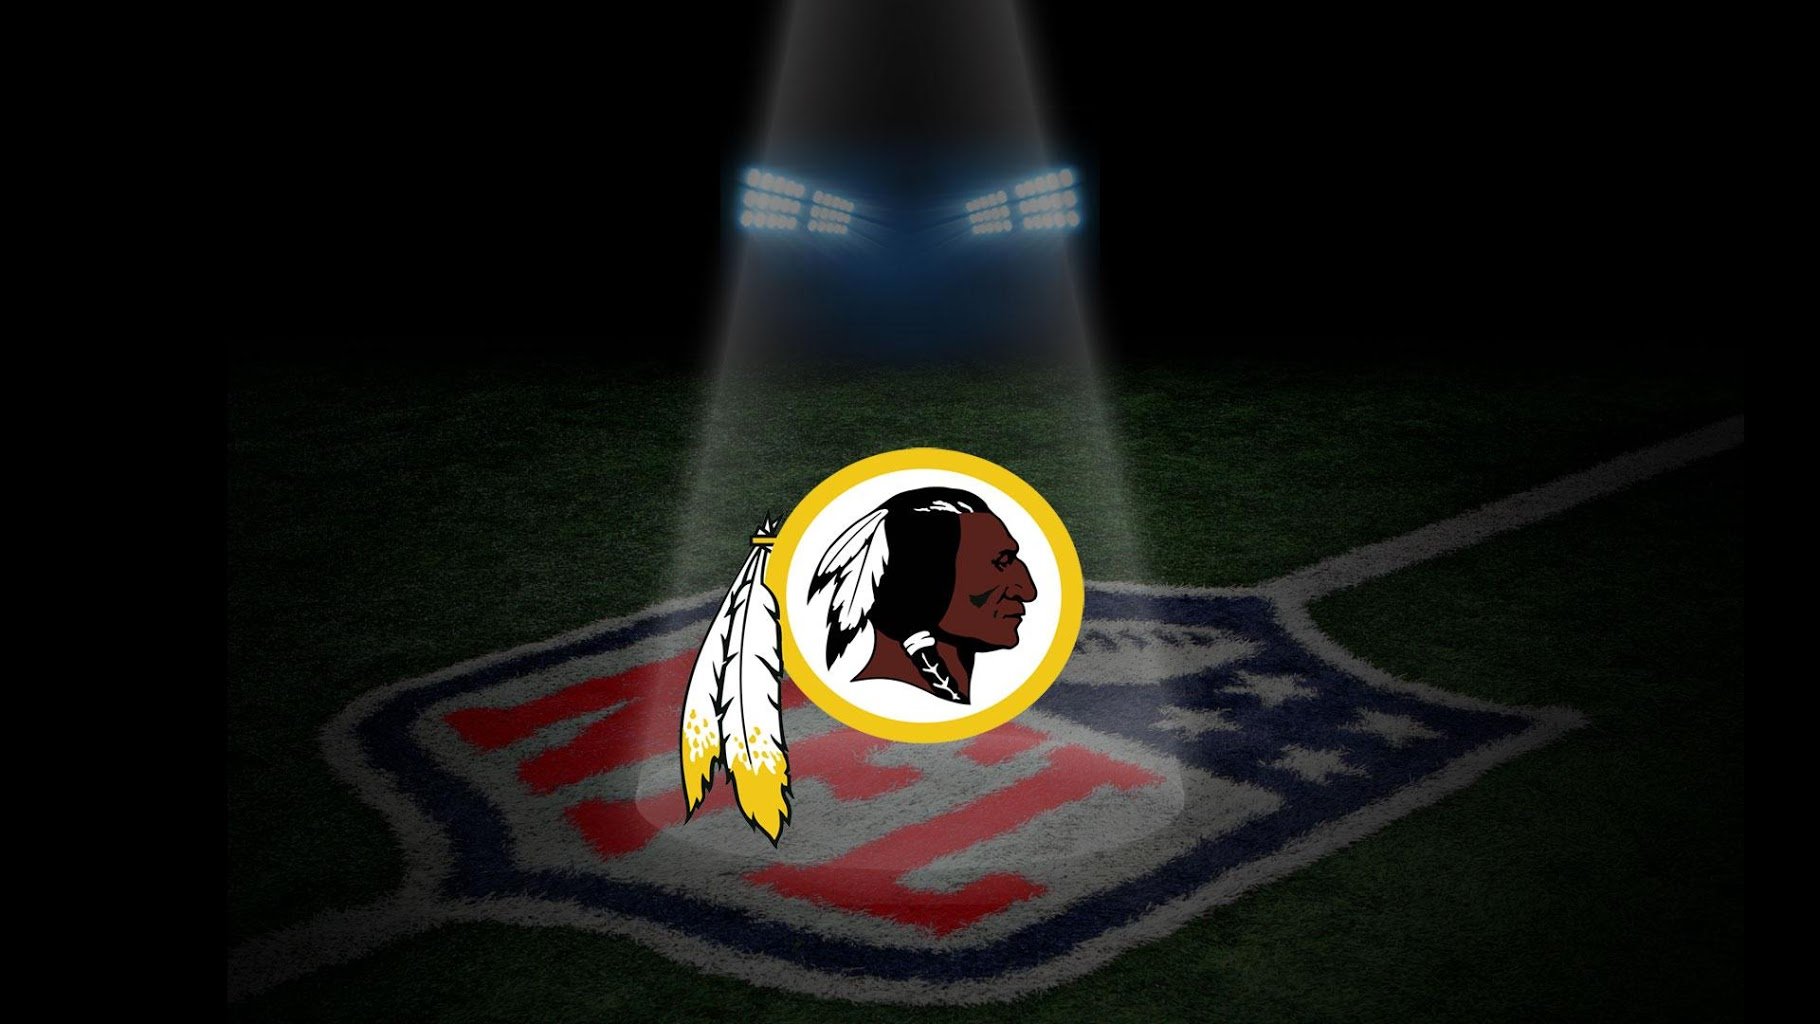 Redskins Wallpaper Desktop 1820x1024